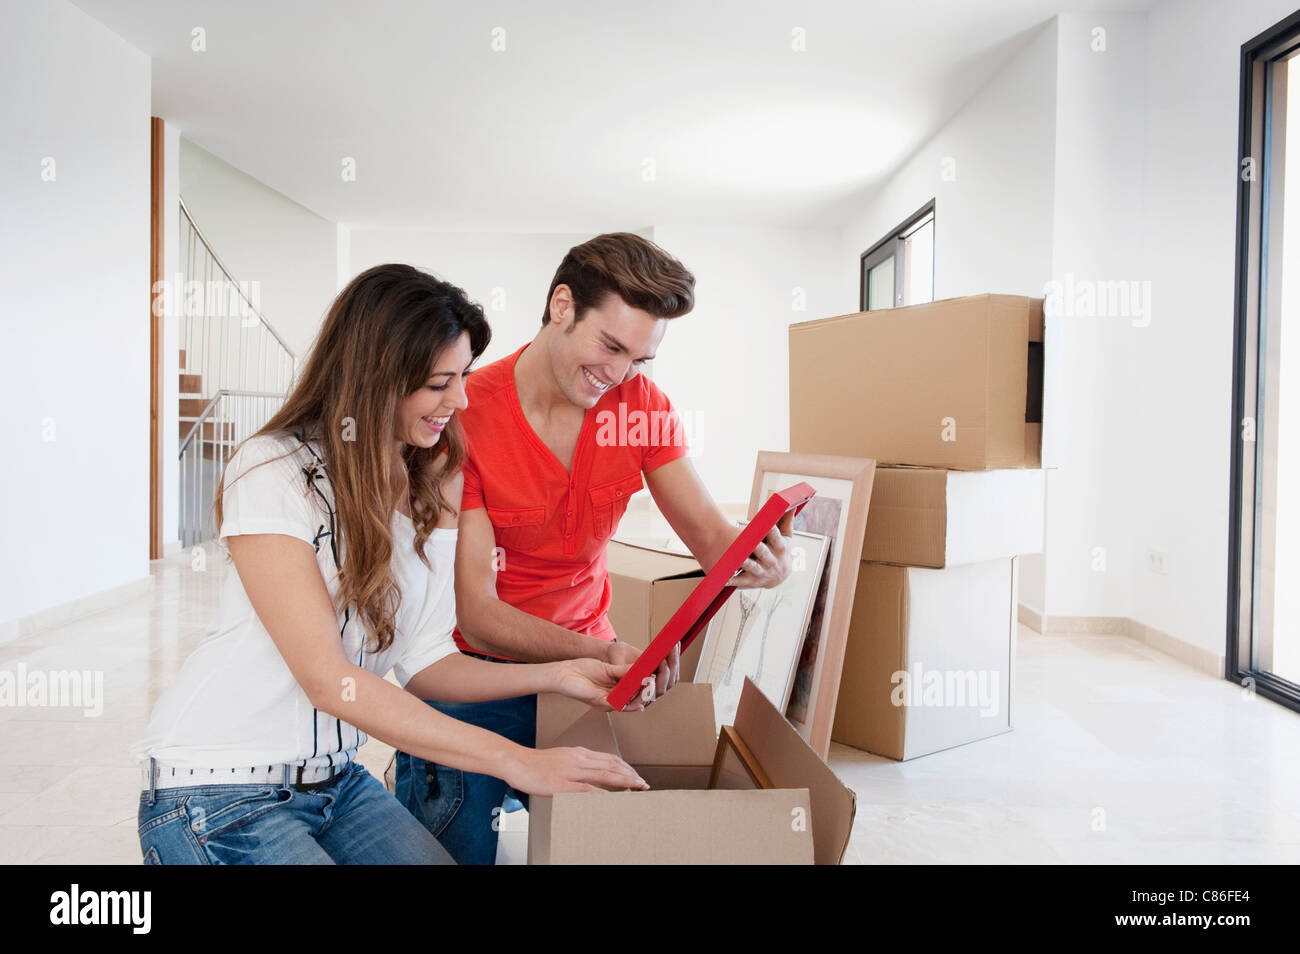 Couple unpacking box in new home - Stock Image